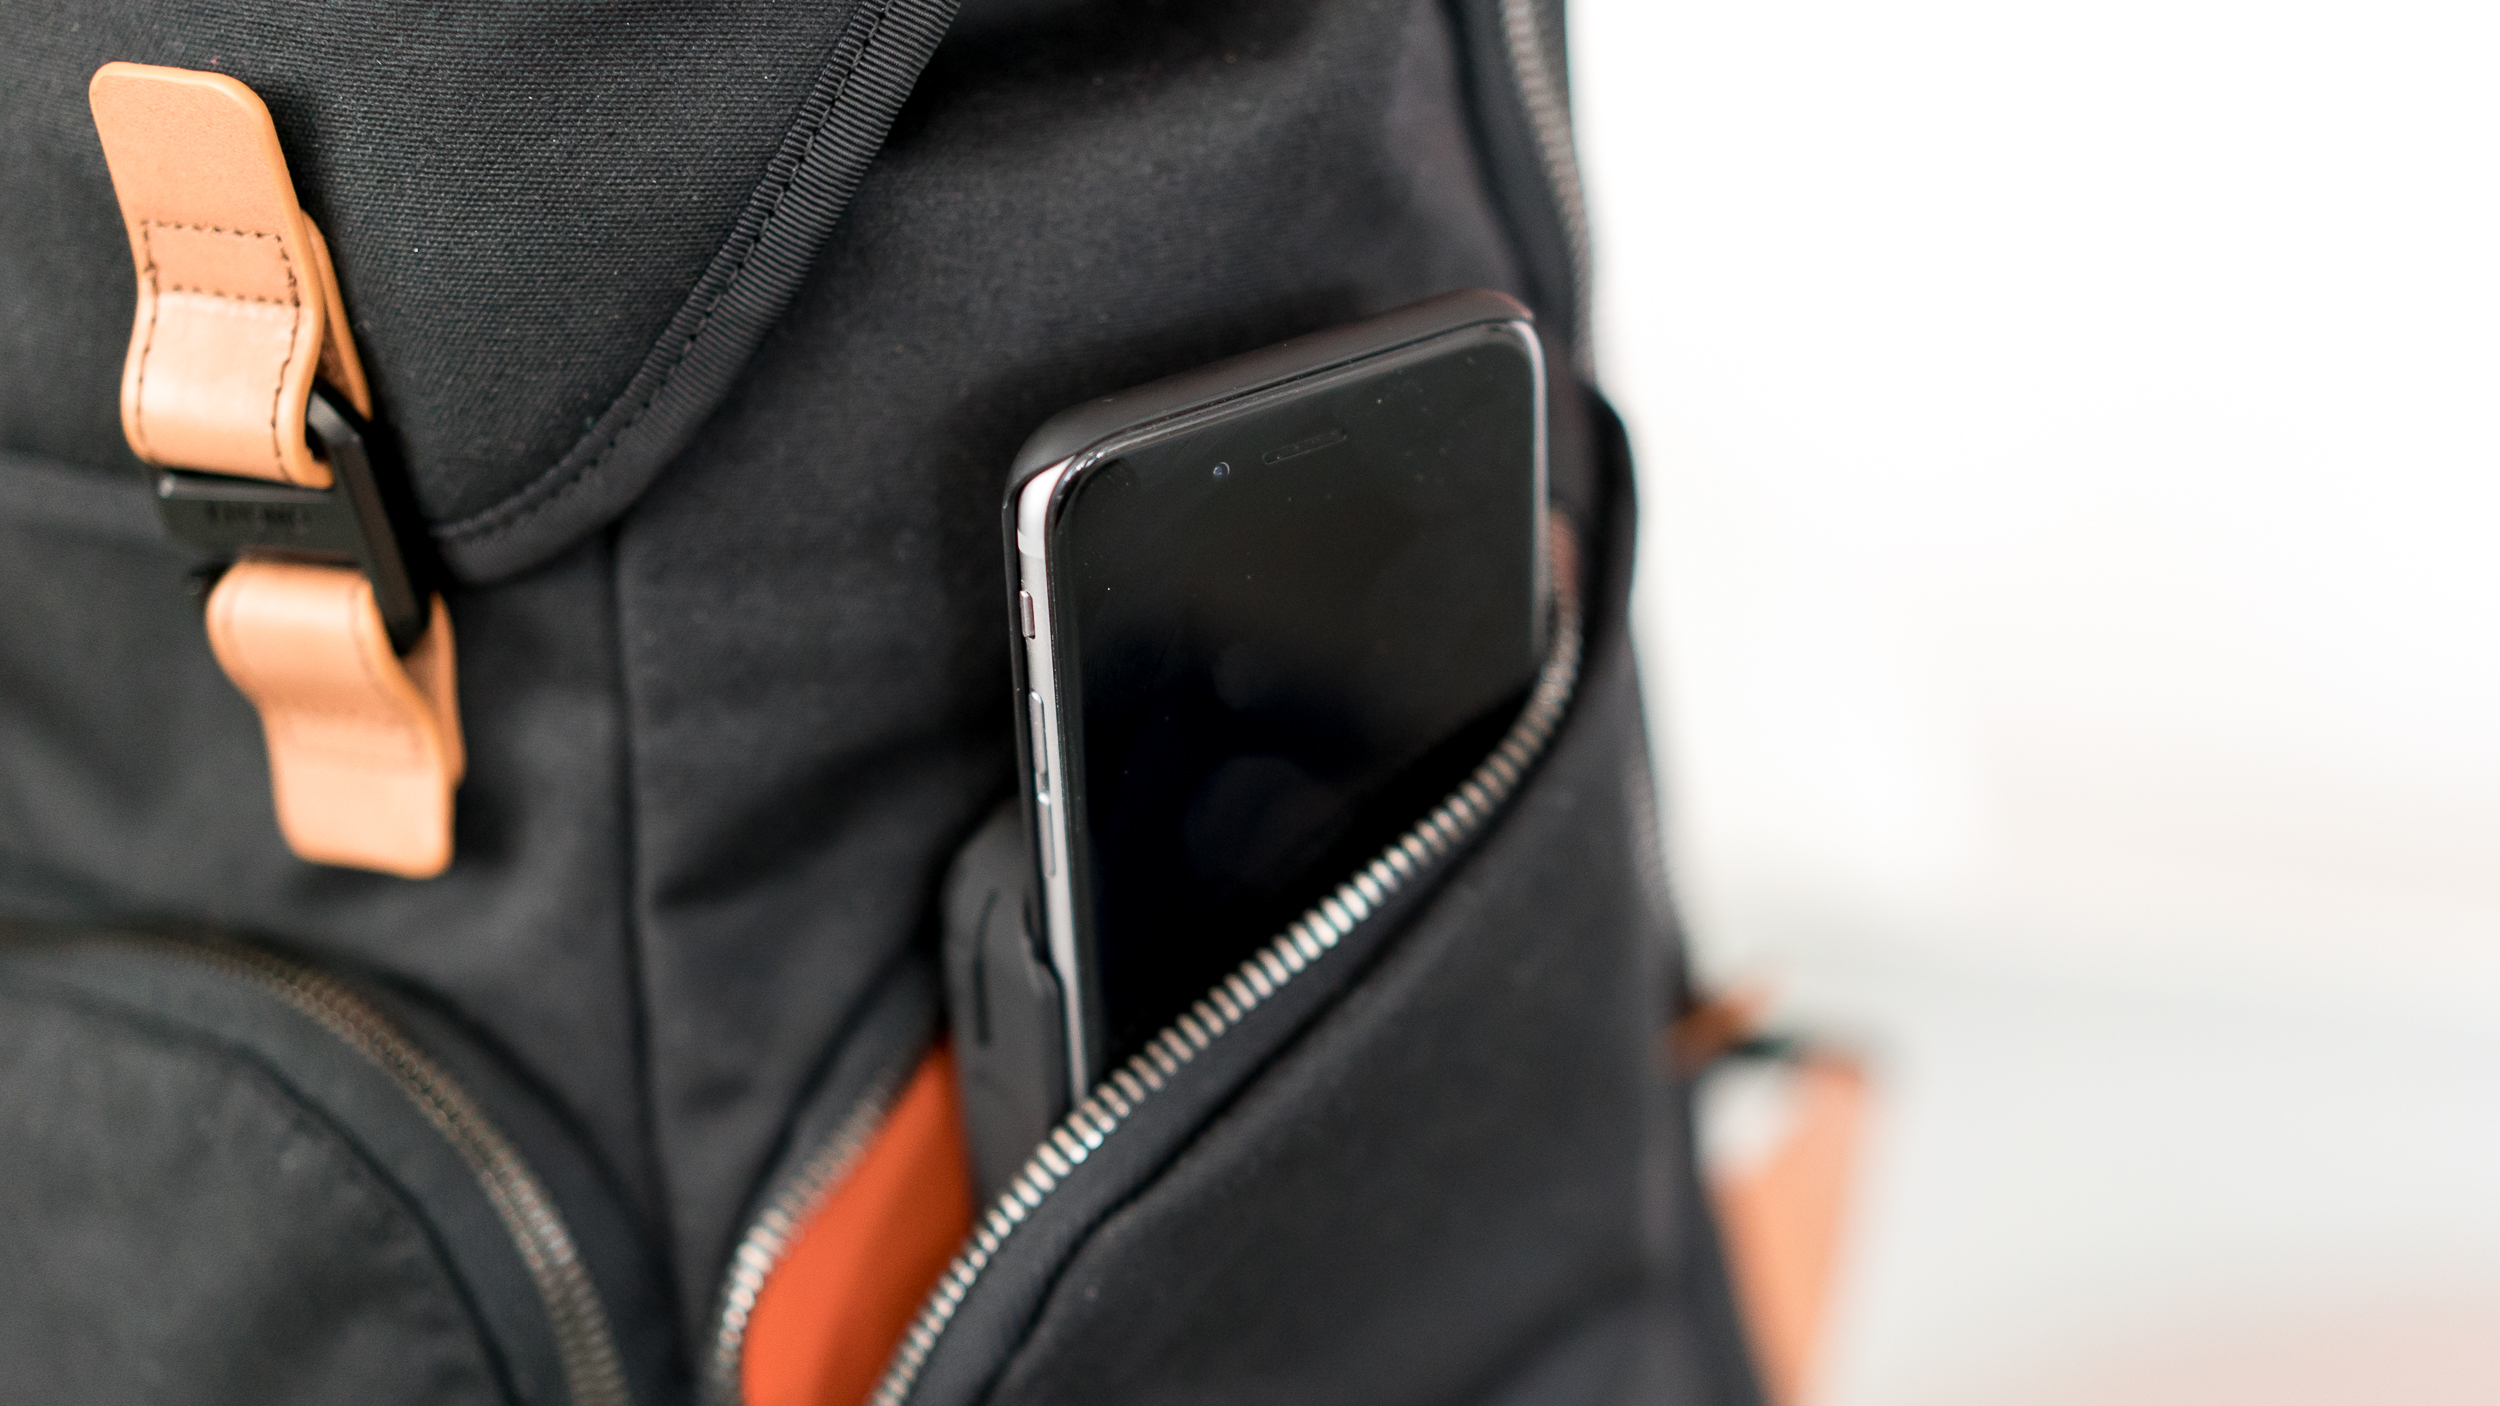 You can opt for an iPhone case that slides into the battery pack.